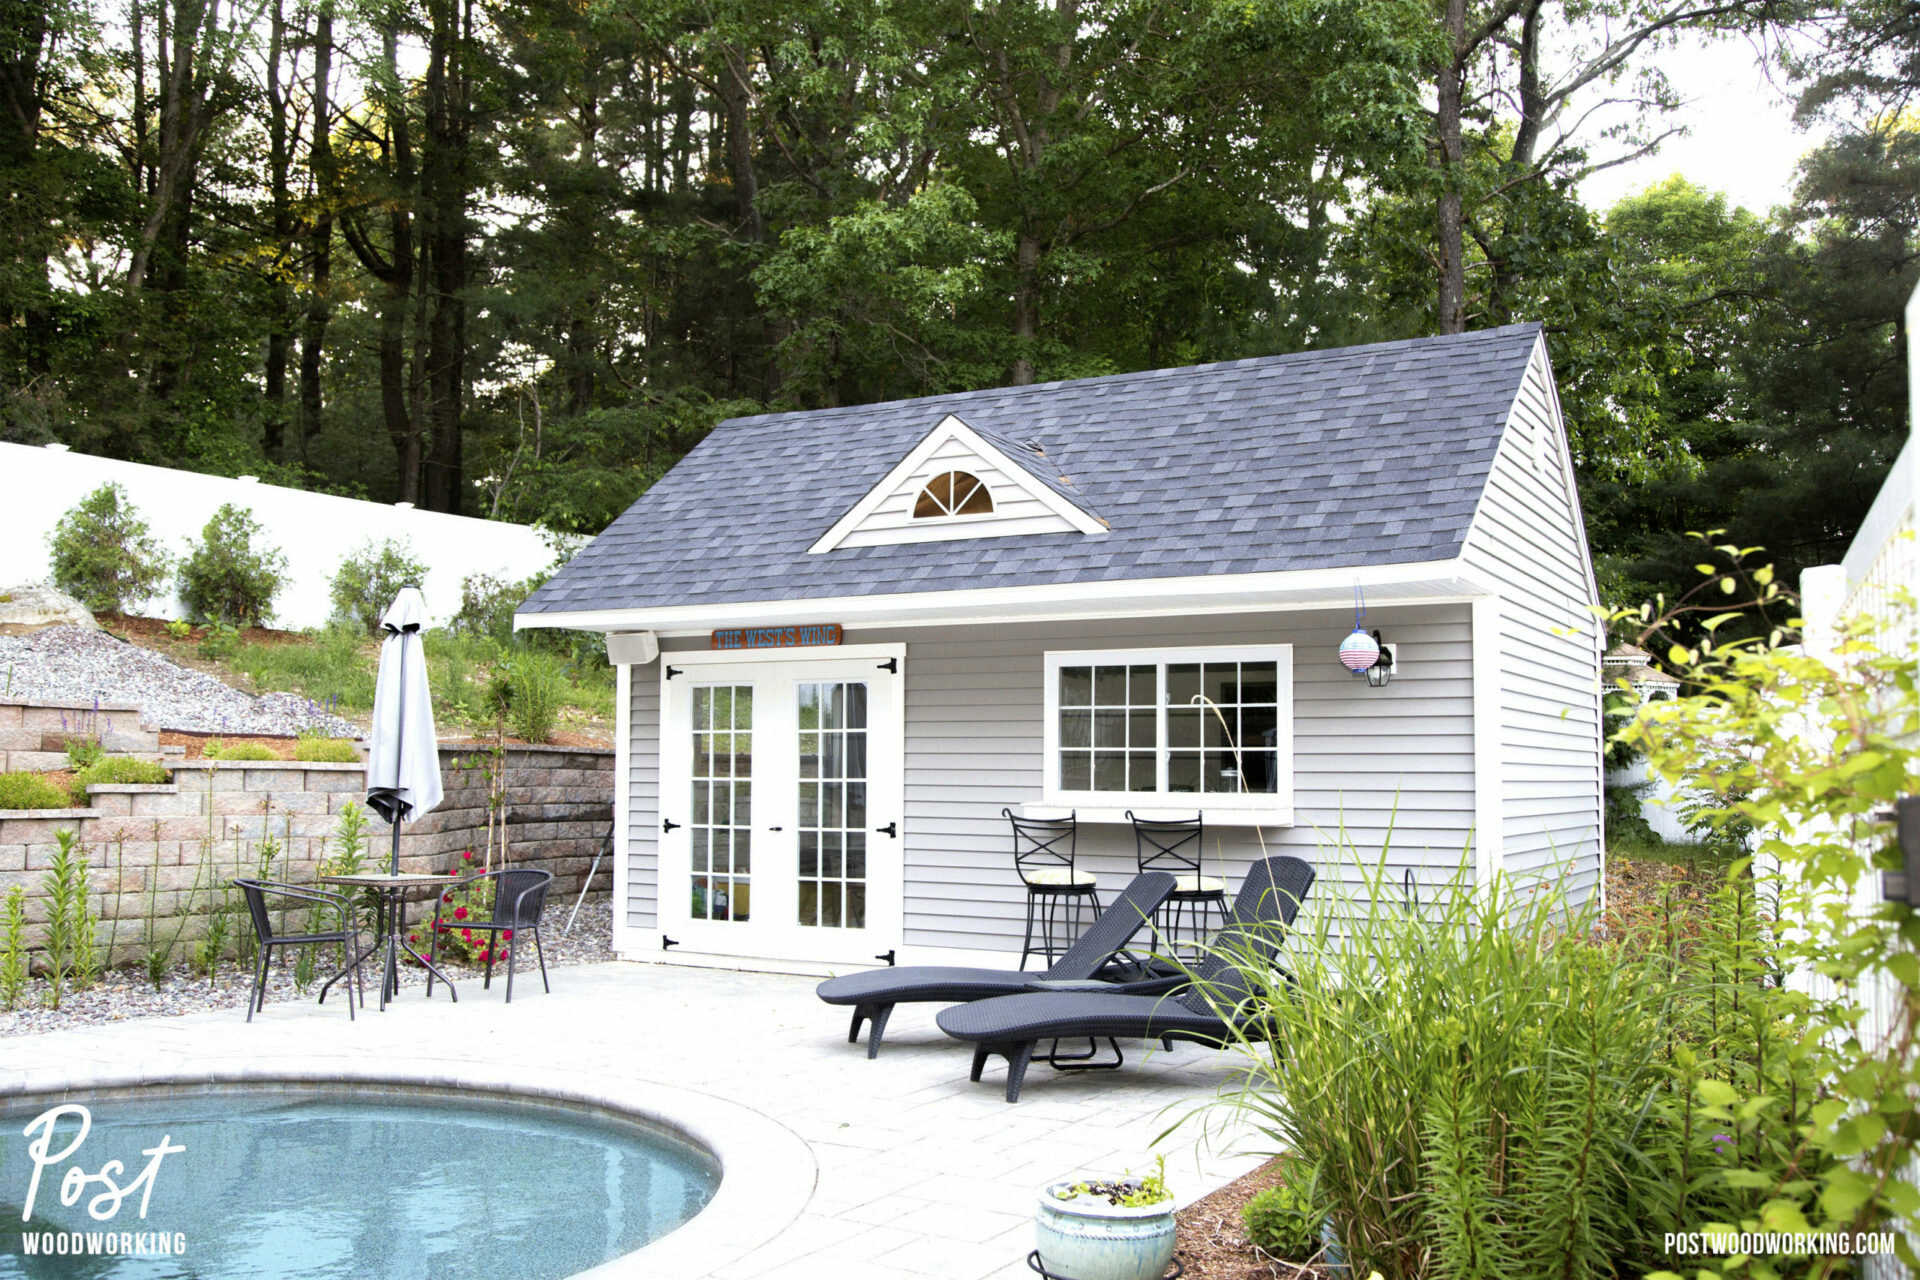 The Ultimate Guide to Building a Pool House